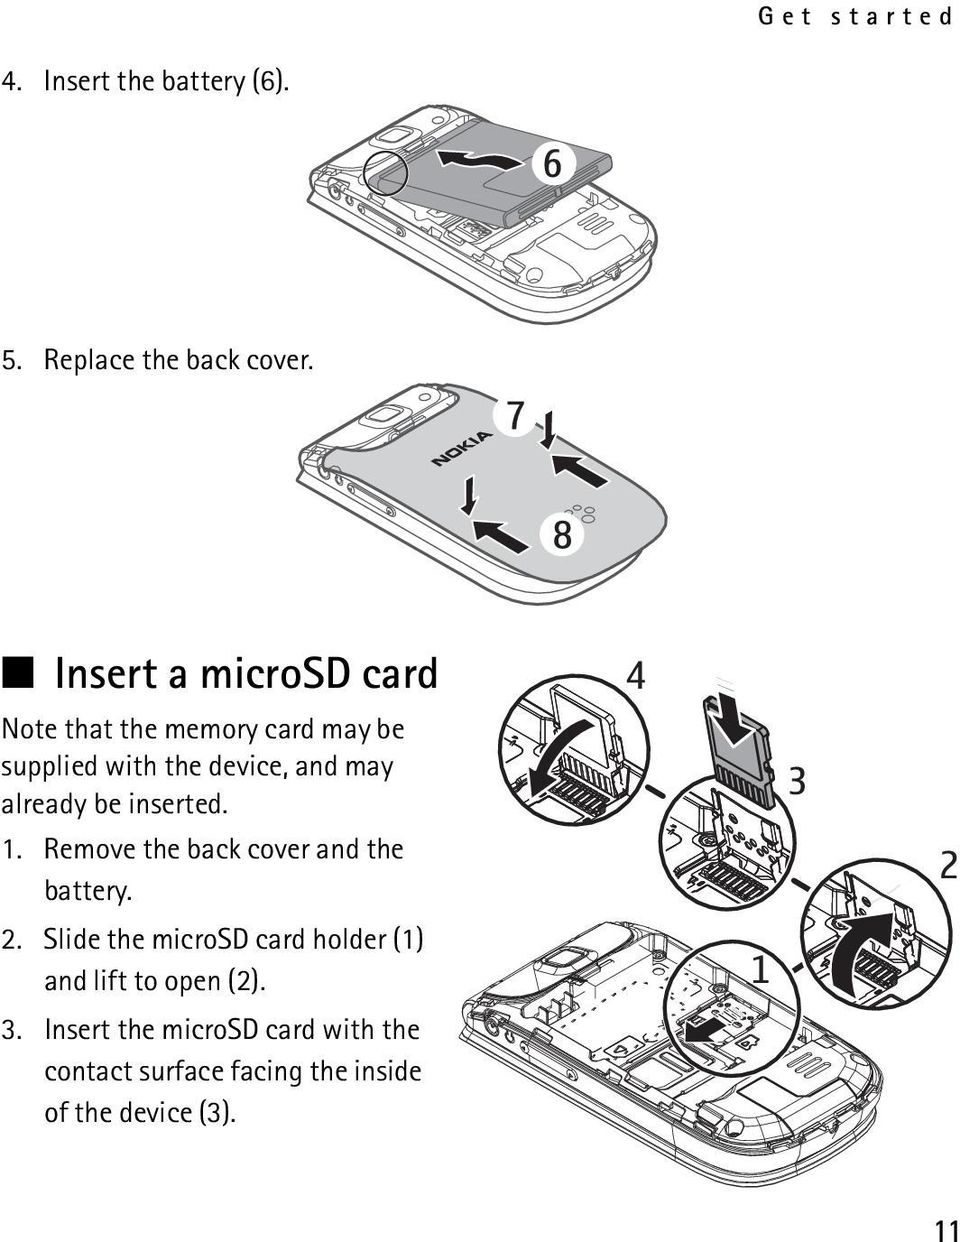 already be inserted. 1. Remove the back cover and the battery. 2.